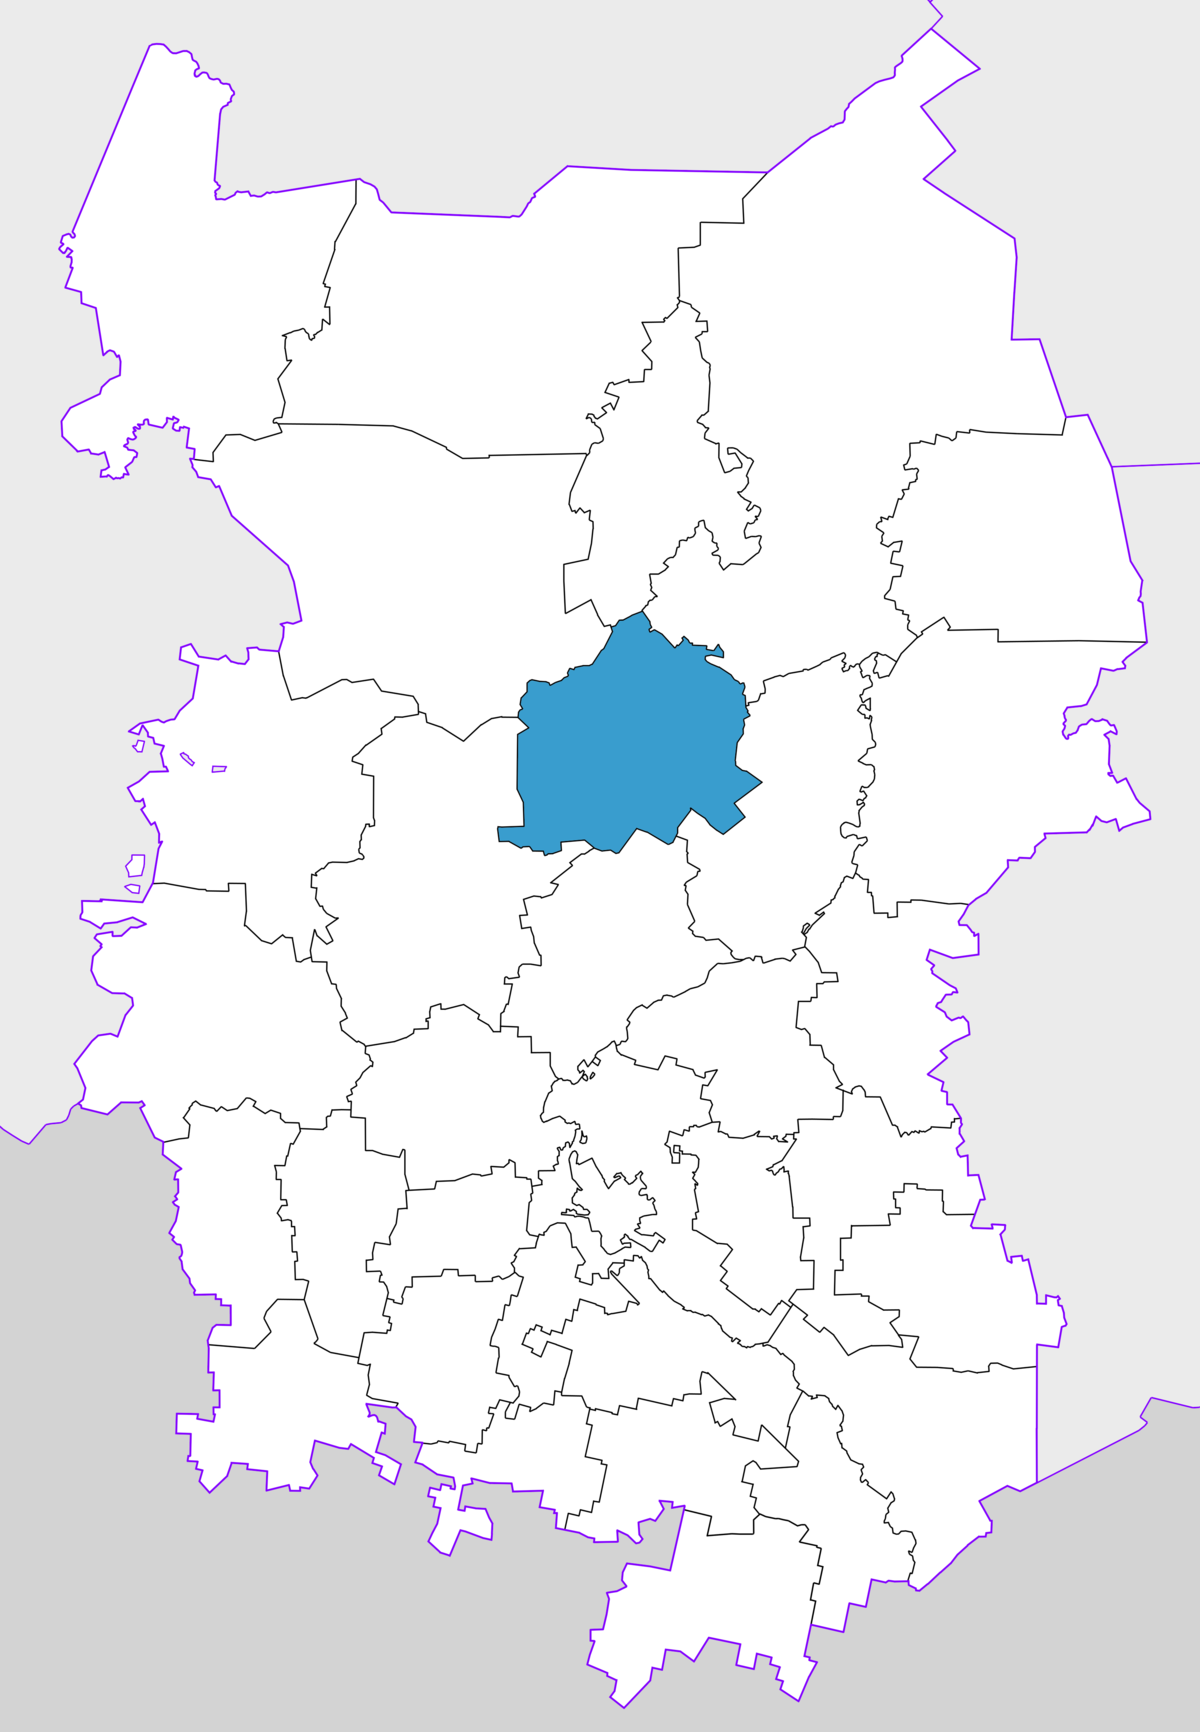 What is the federal district of Omsk, and where is it located 83